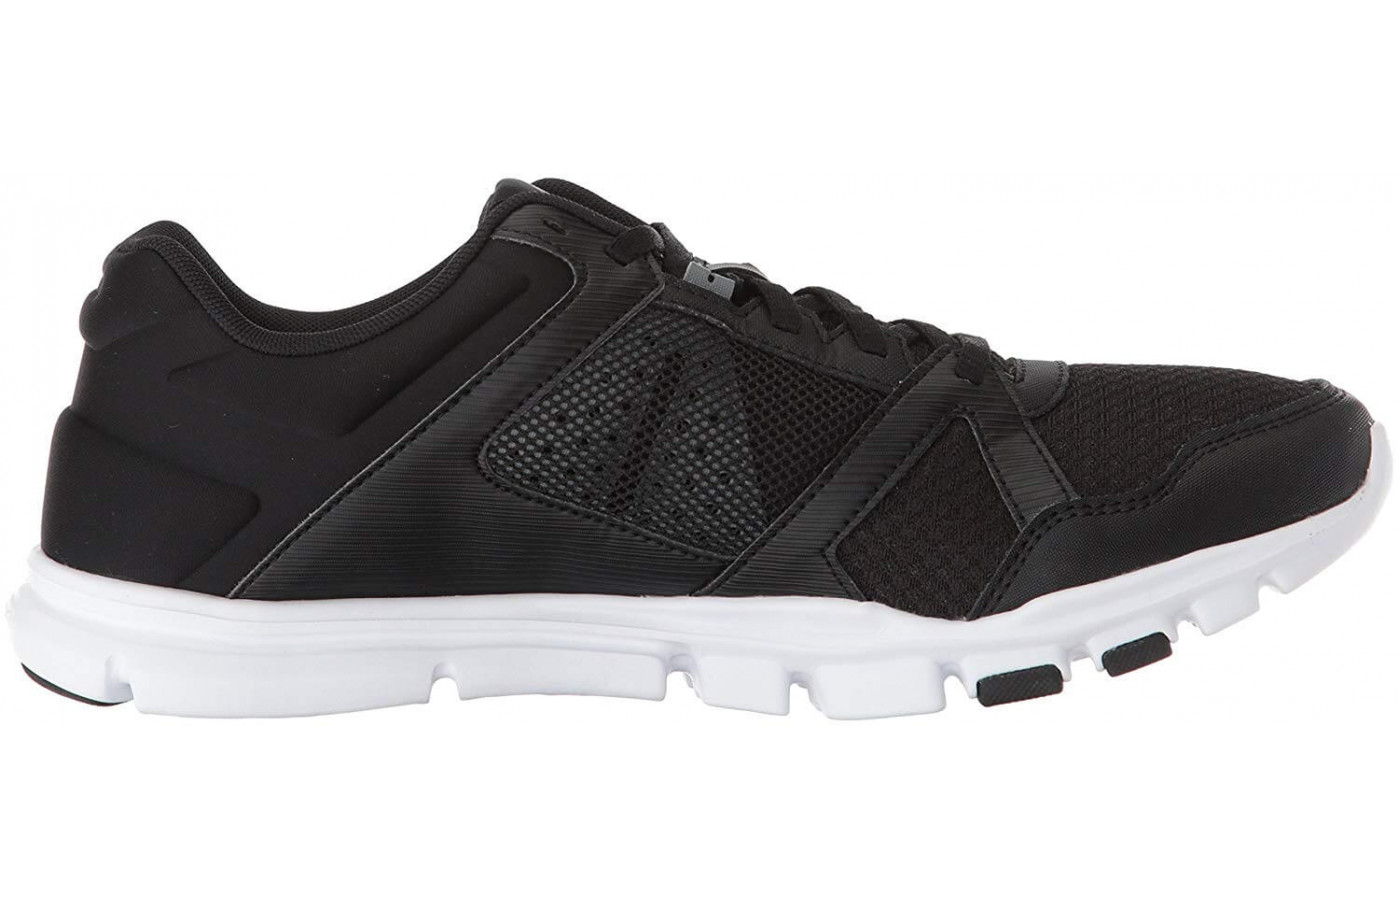 IMEVA makes up the Yourflex Train 10's lightweight midsole.